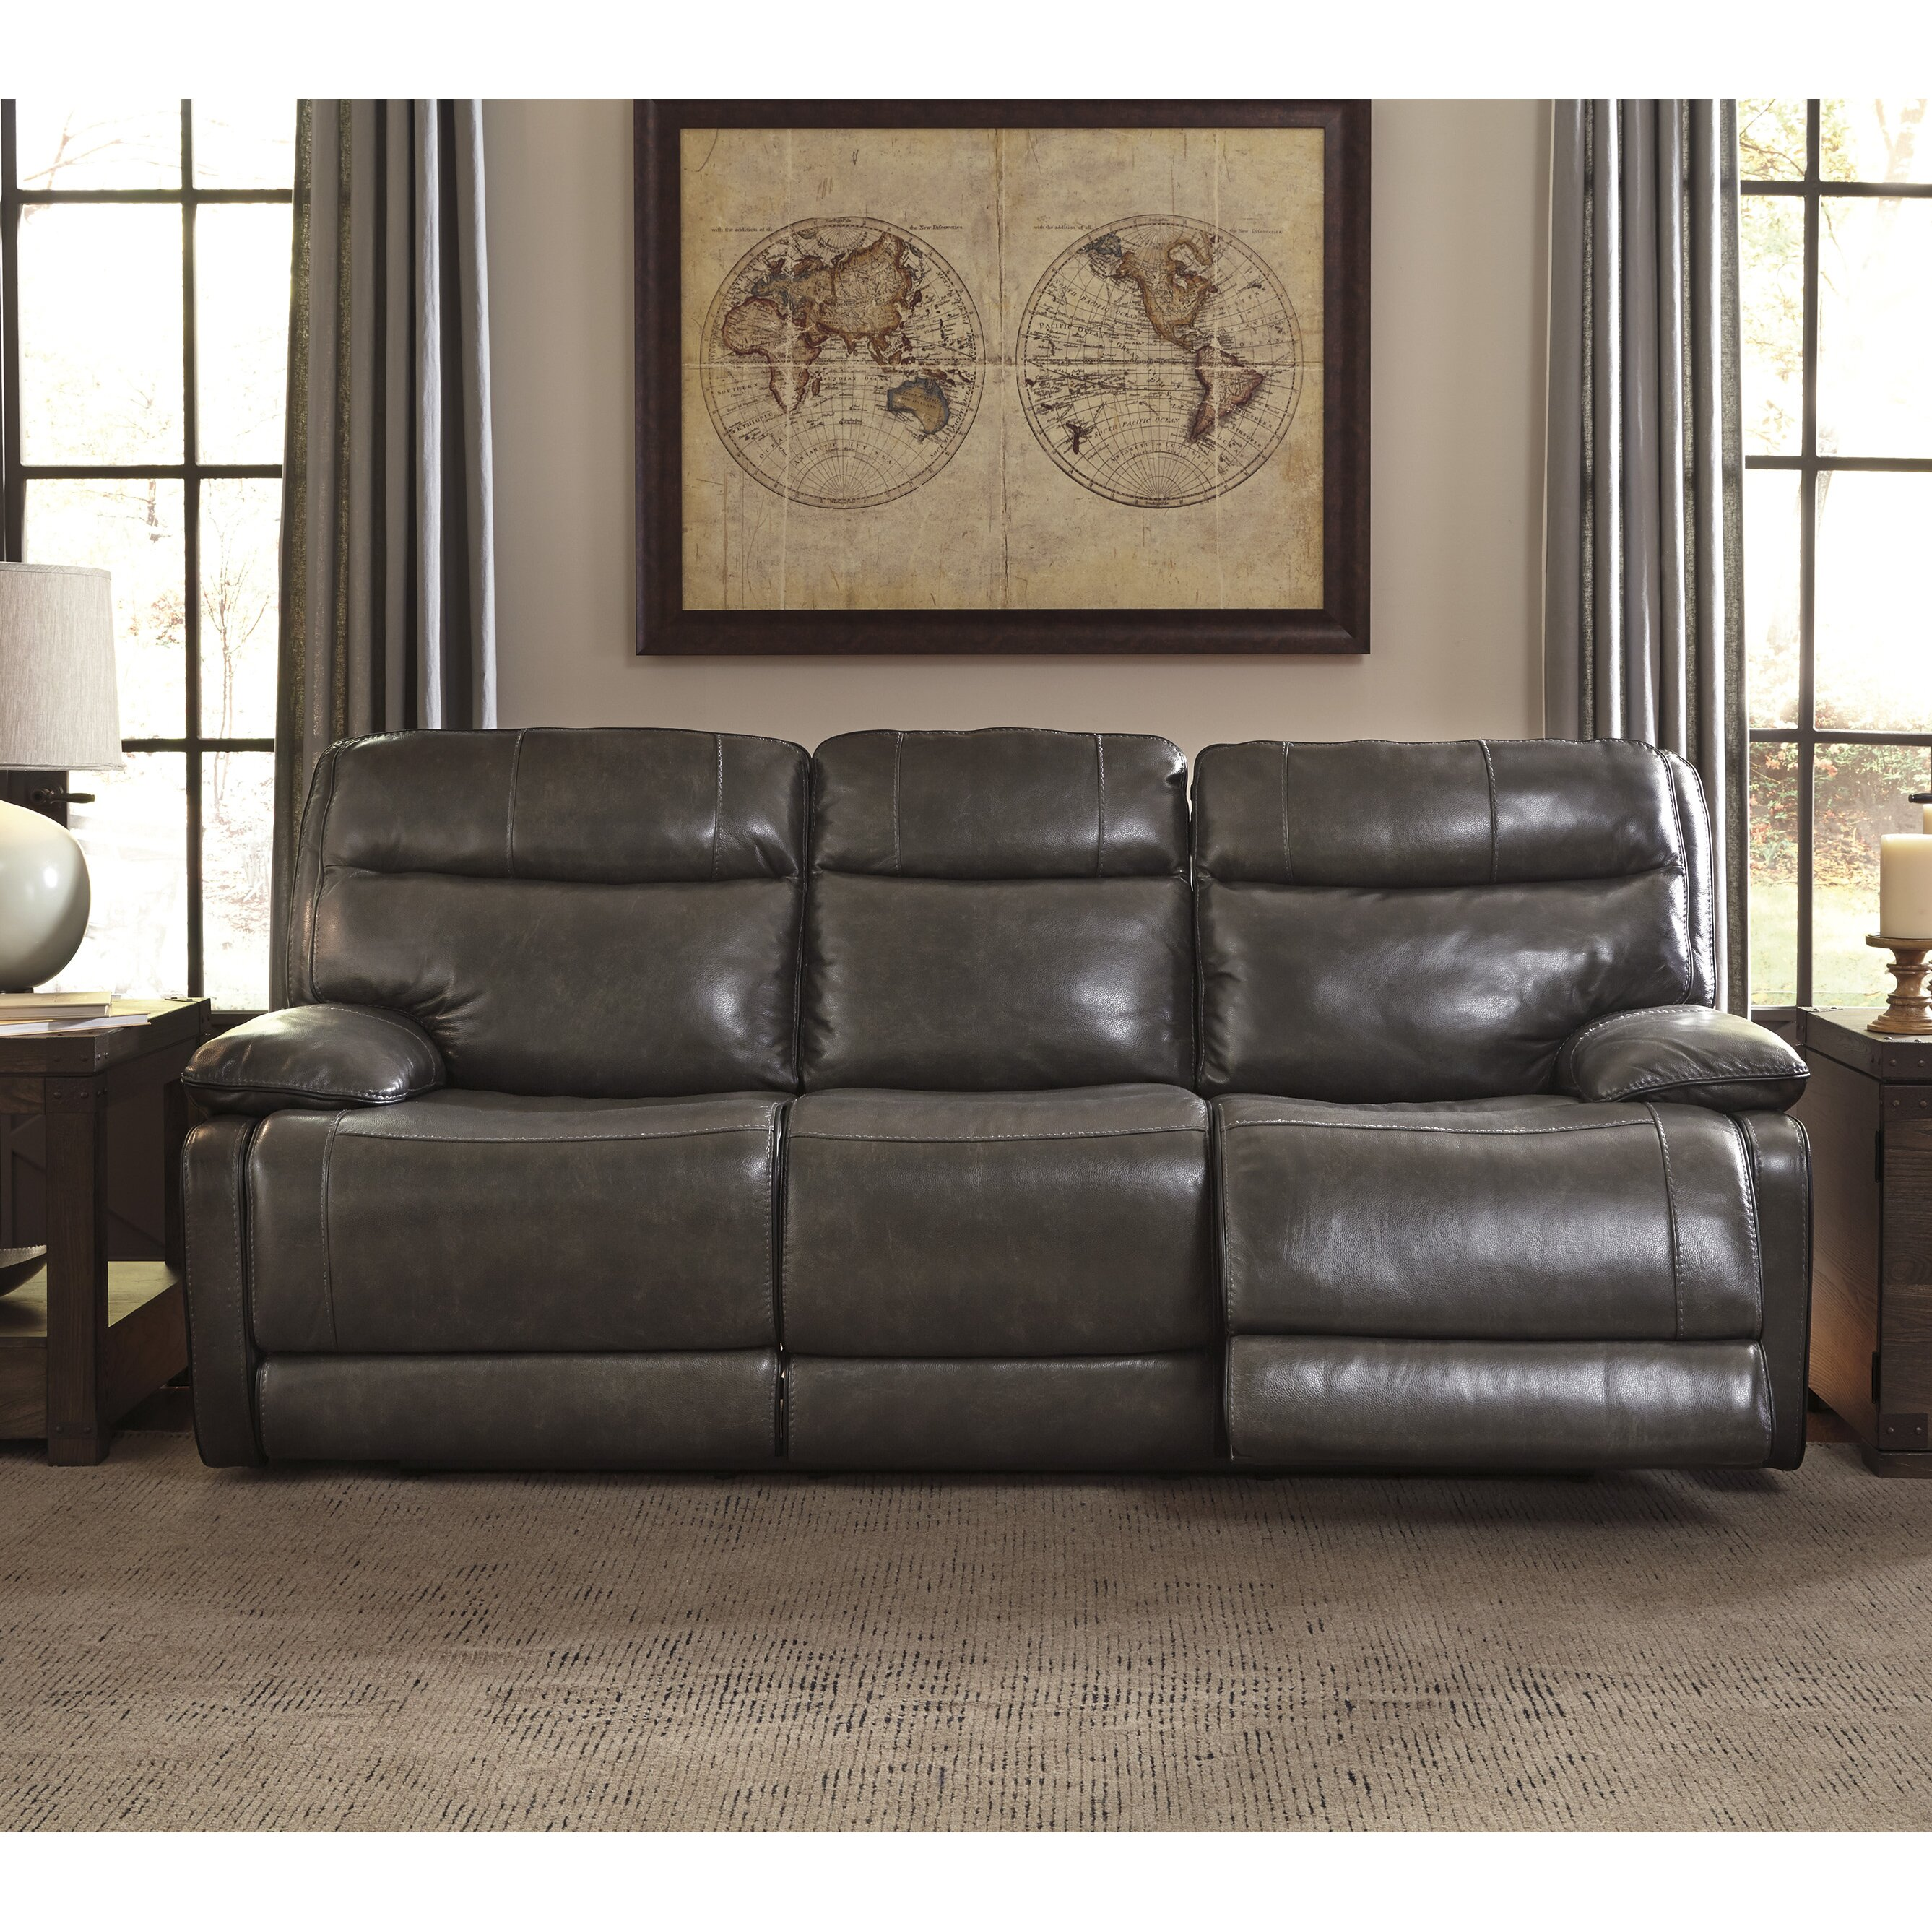 Signature Design By Ashley Leather Reclining Sofa Wayfair